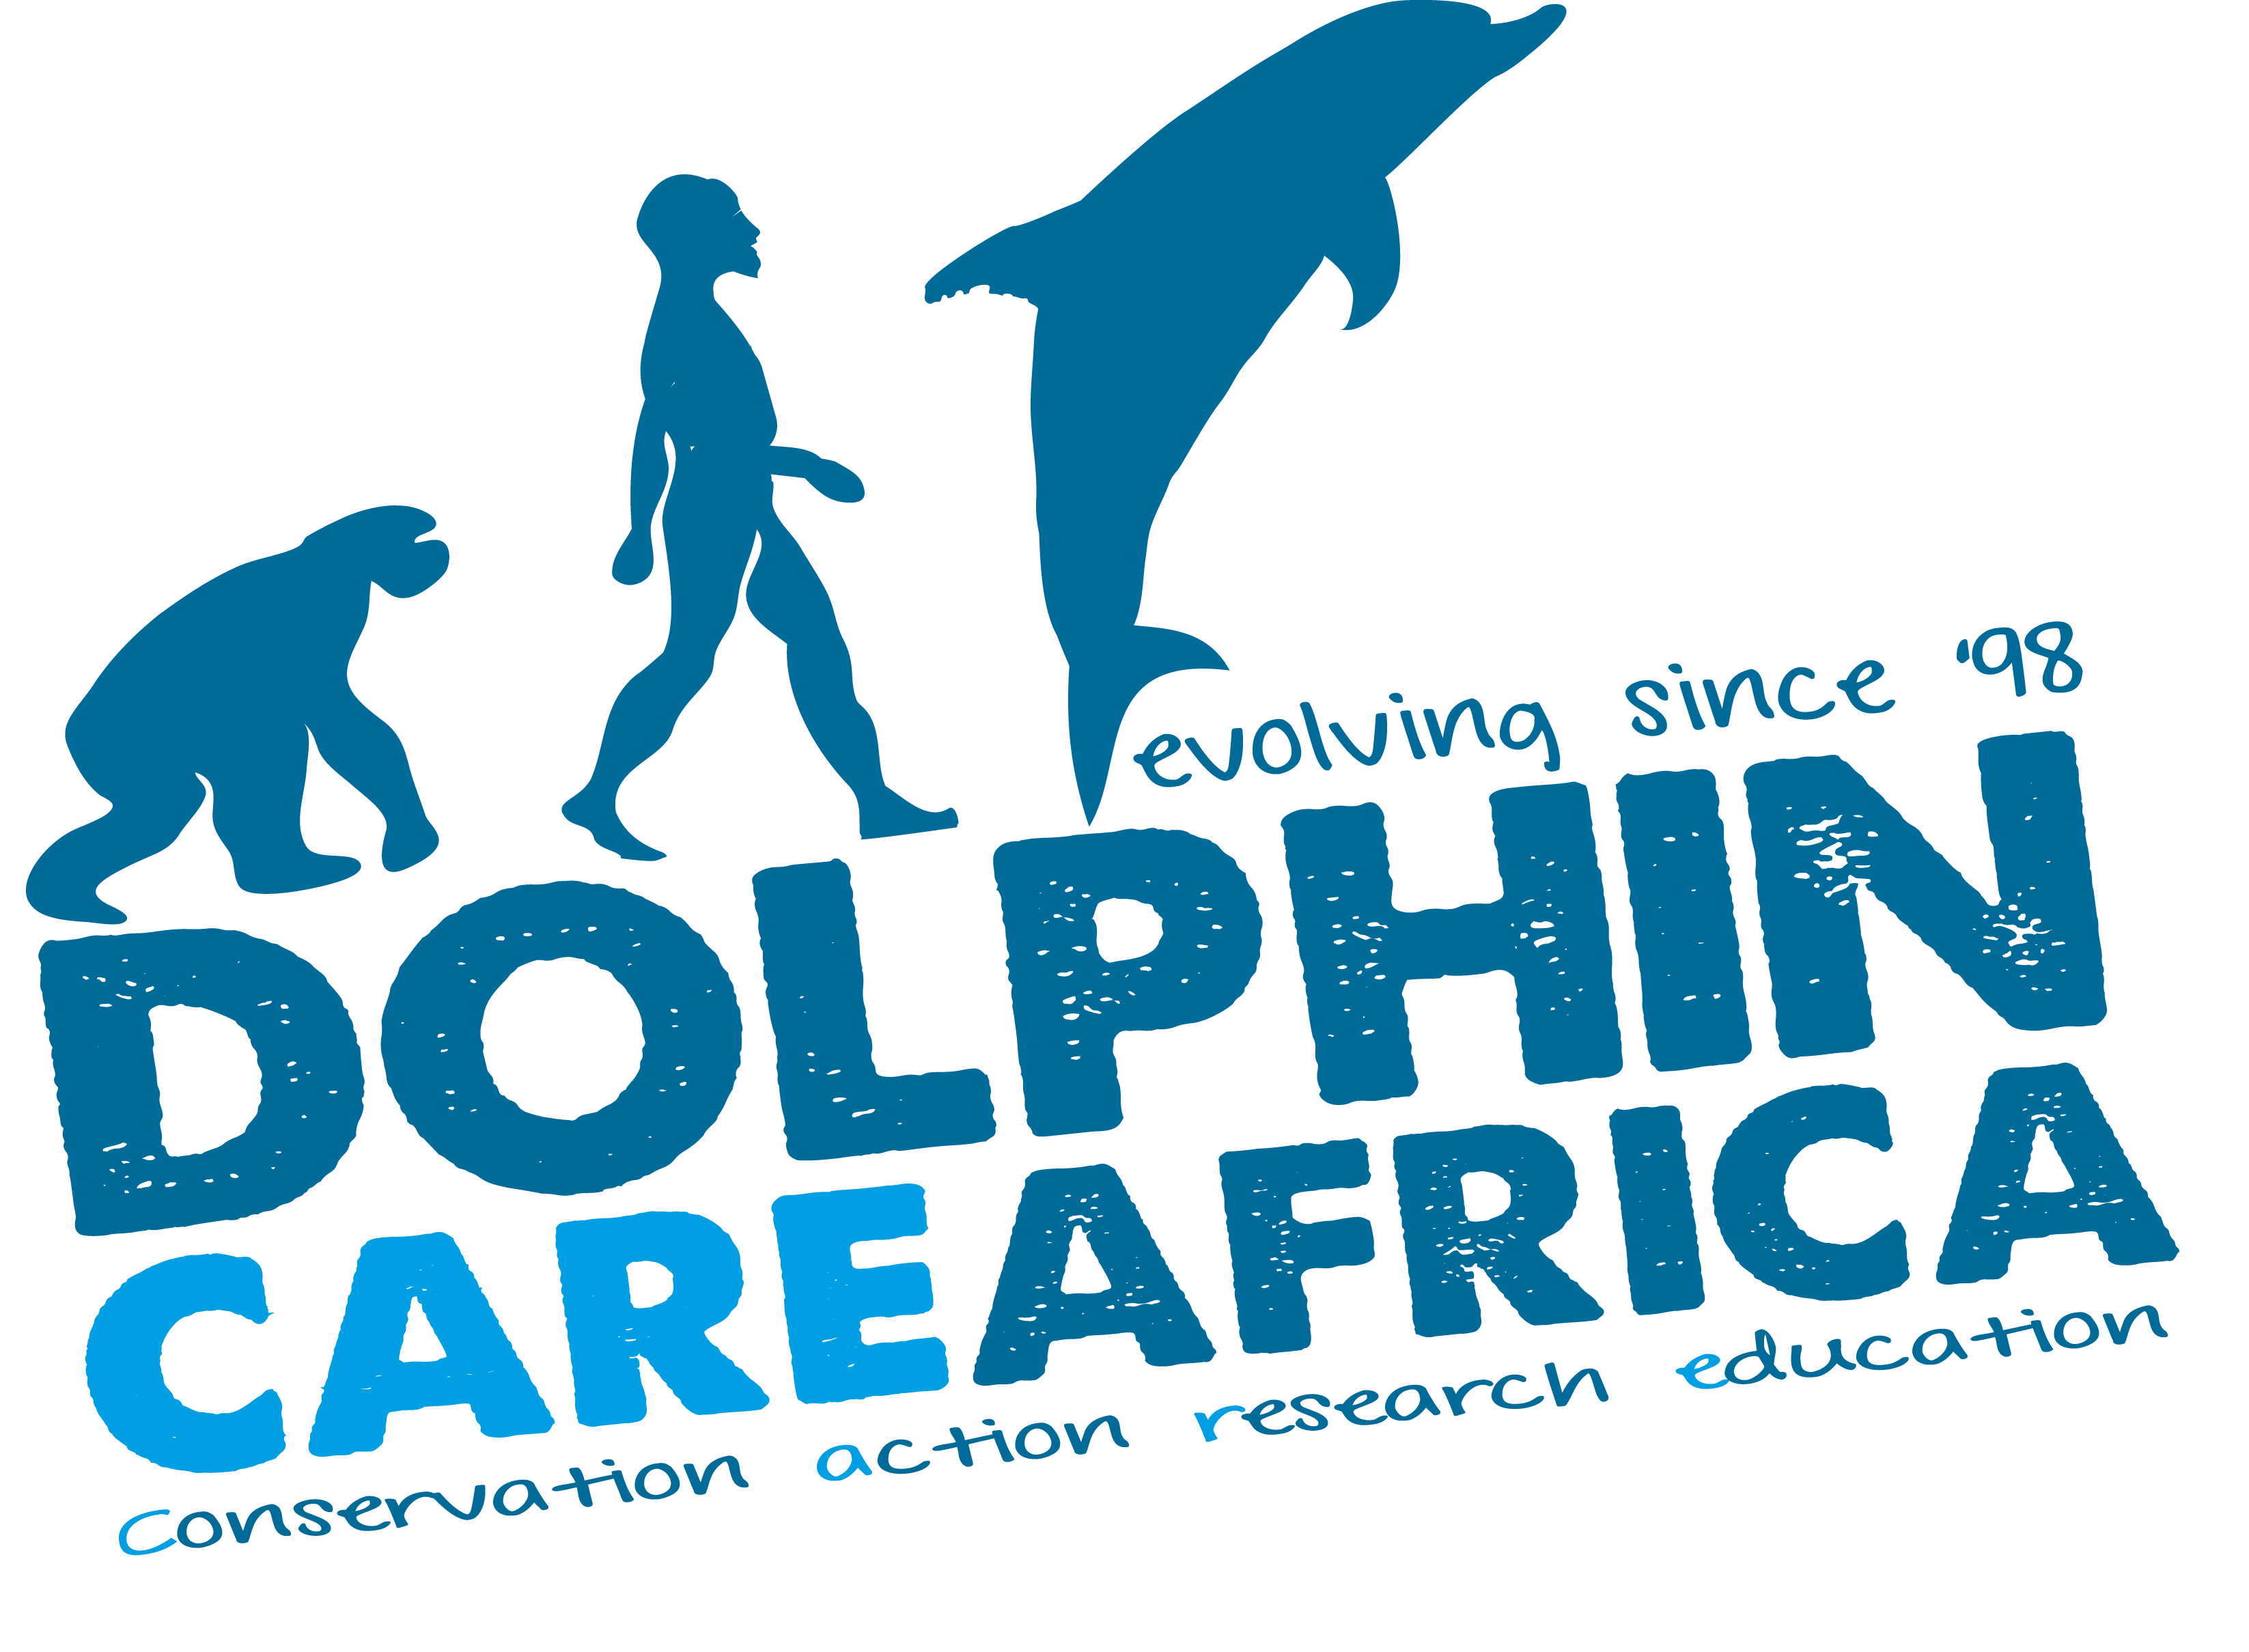 DolphinCare-Africa Thumb Image